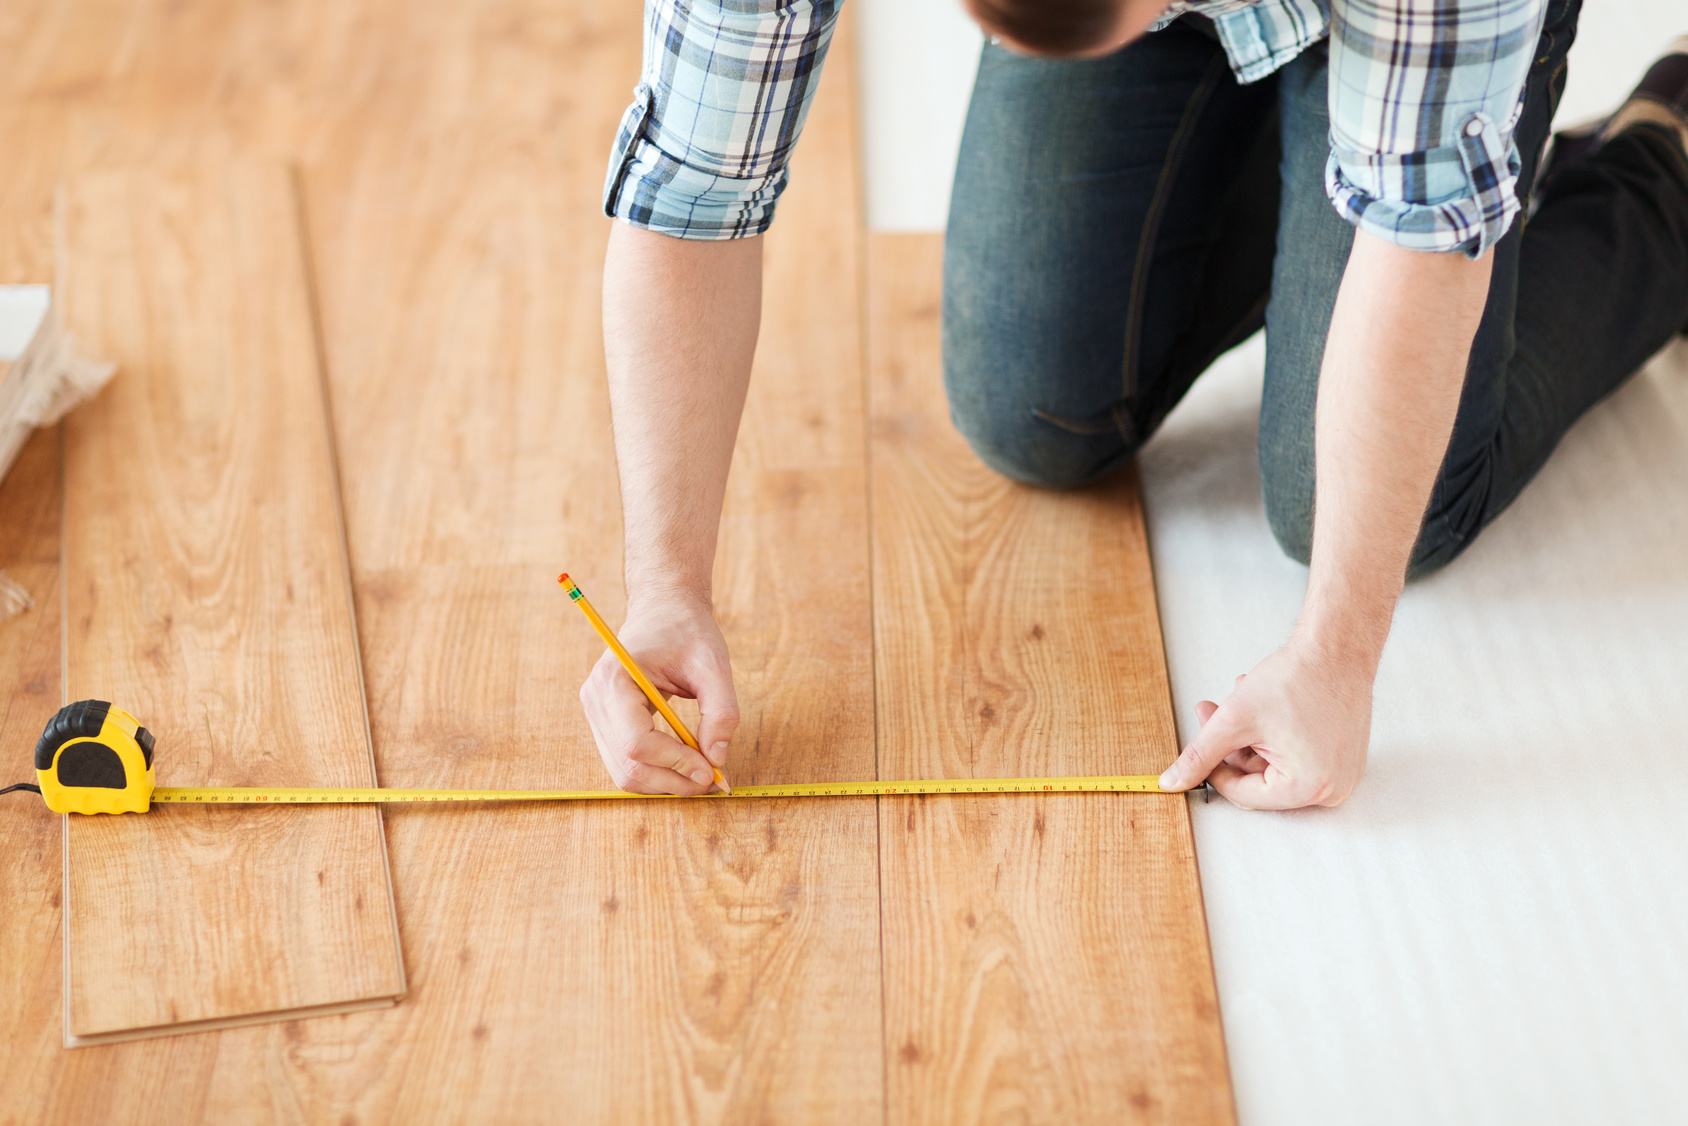 Flooring installation jobs take a lot of care and effort; damp meters for flooring help make sure that the time, labor, and materials don't go to waste.